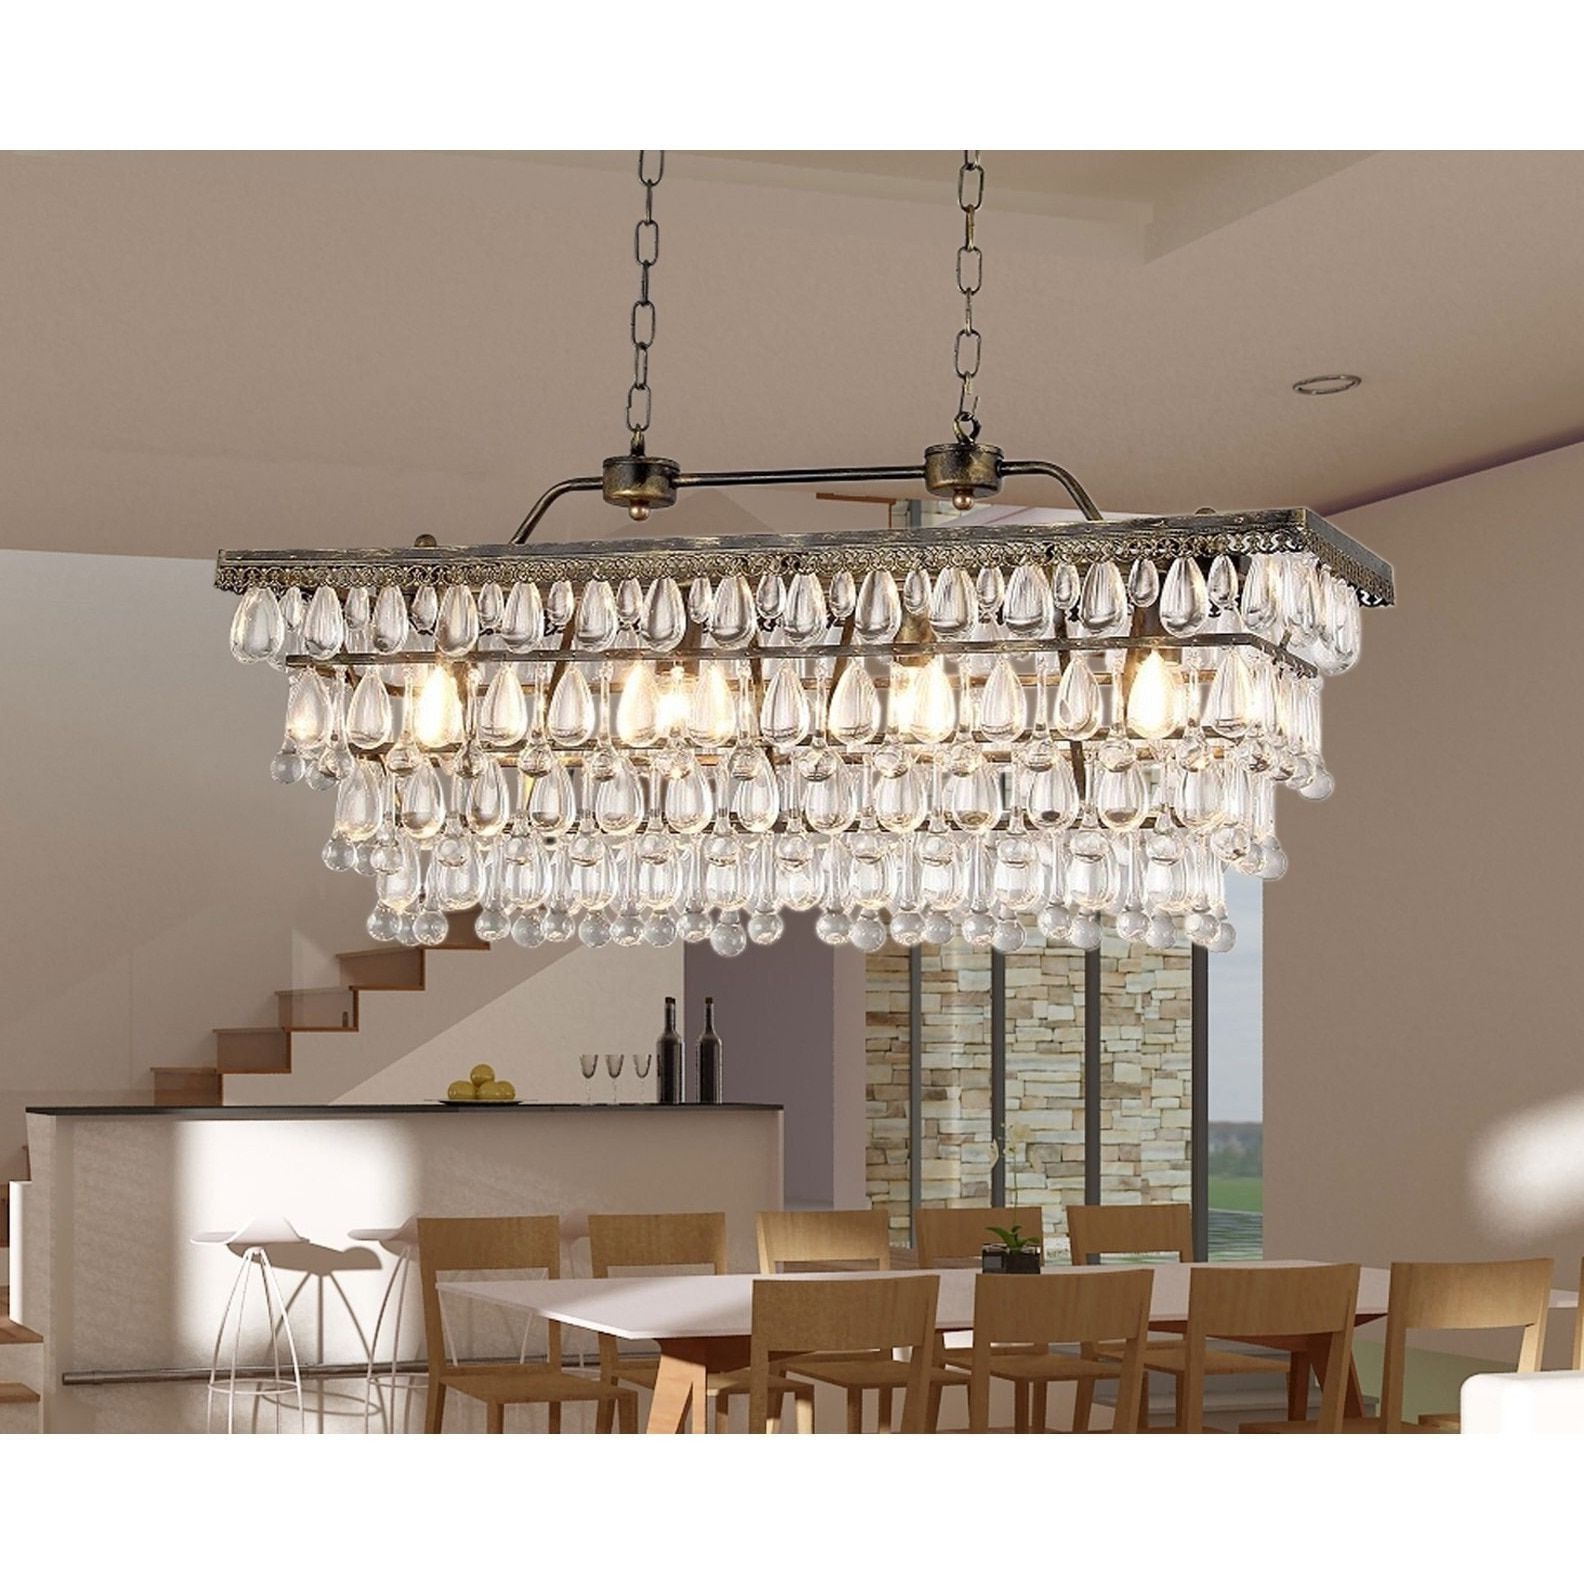 Whitten 4 Light Crystal Chandeliers With Recent Huskar Bronze 4 Light Pendant With Crystal Shade – Artofit (View 18 of 20)